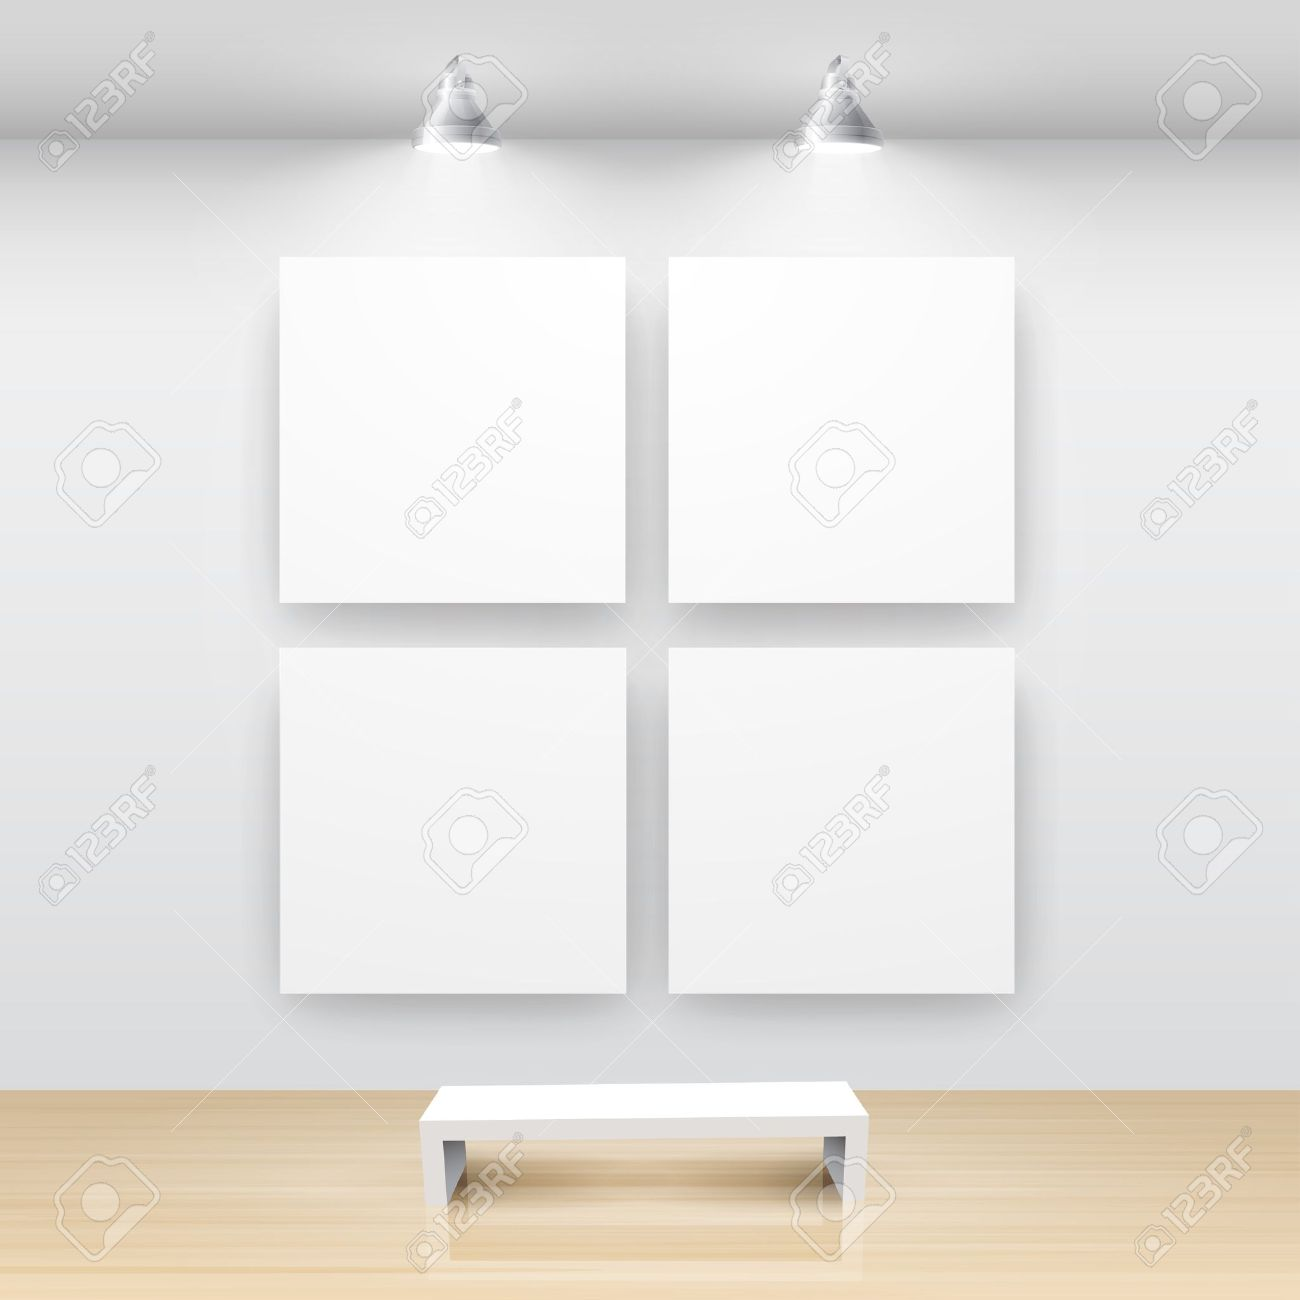 Gallery Wall Stock Vector Illustration And Royalty Free